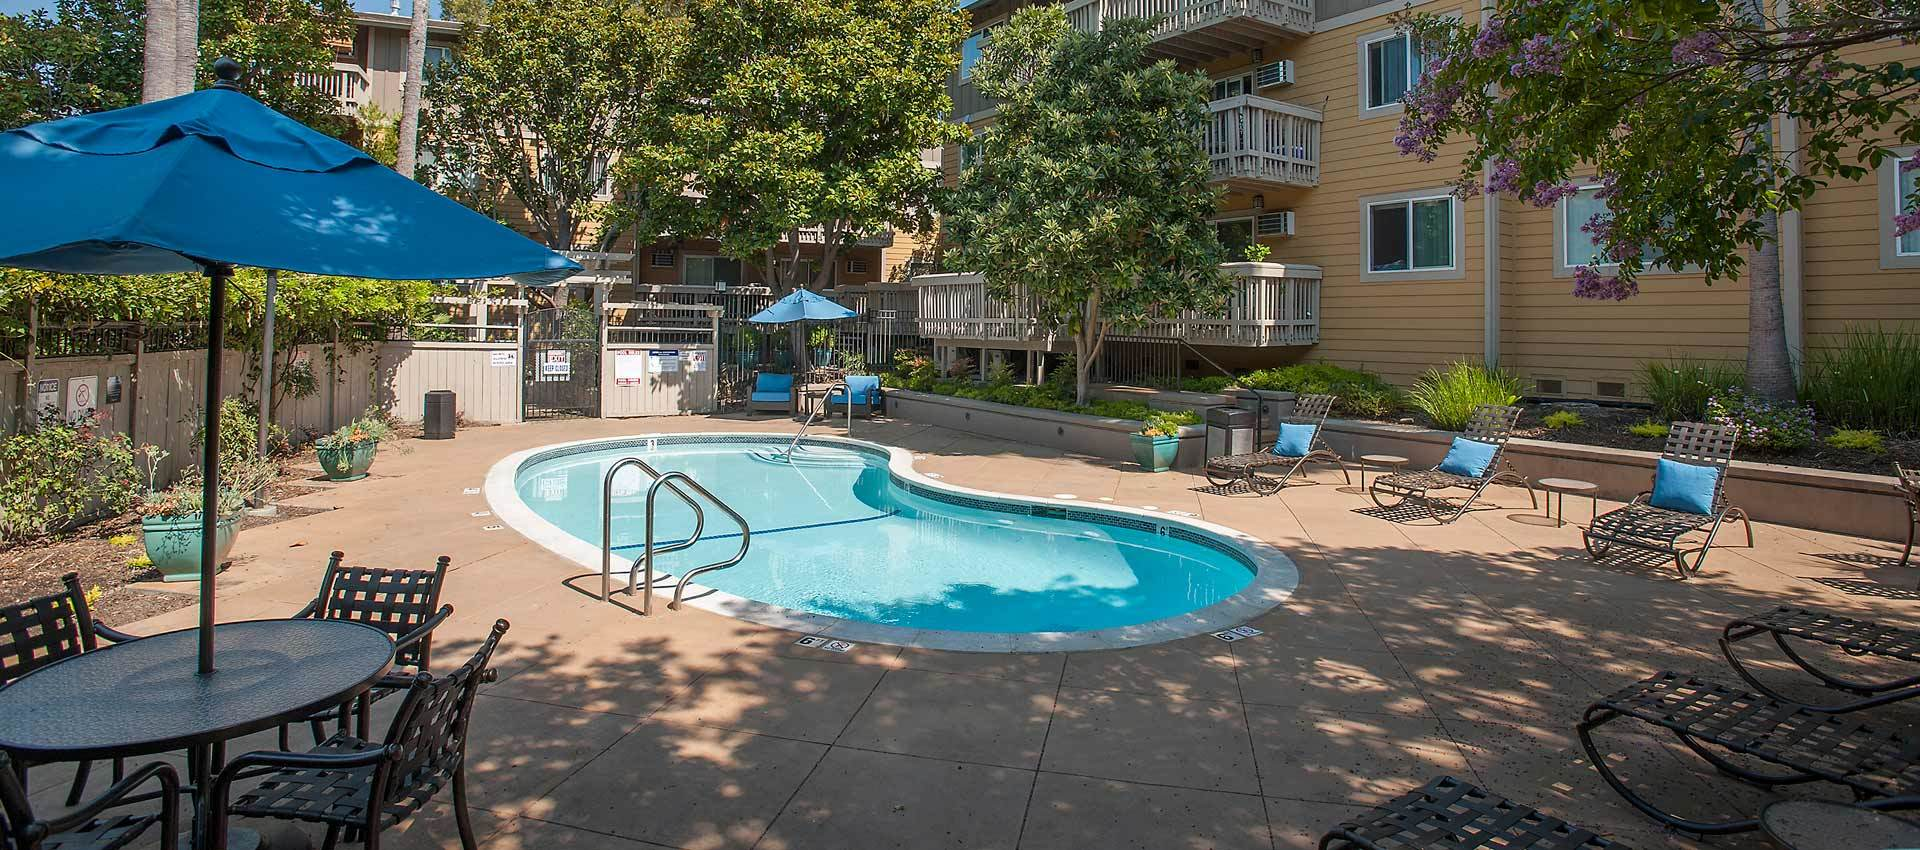 Outdoor pool at apartments in Martinez, CA